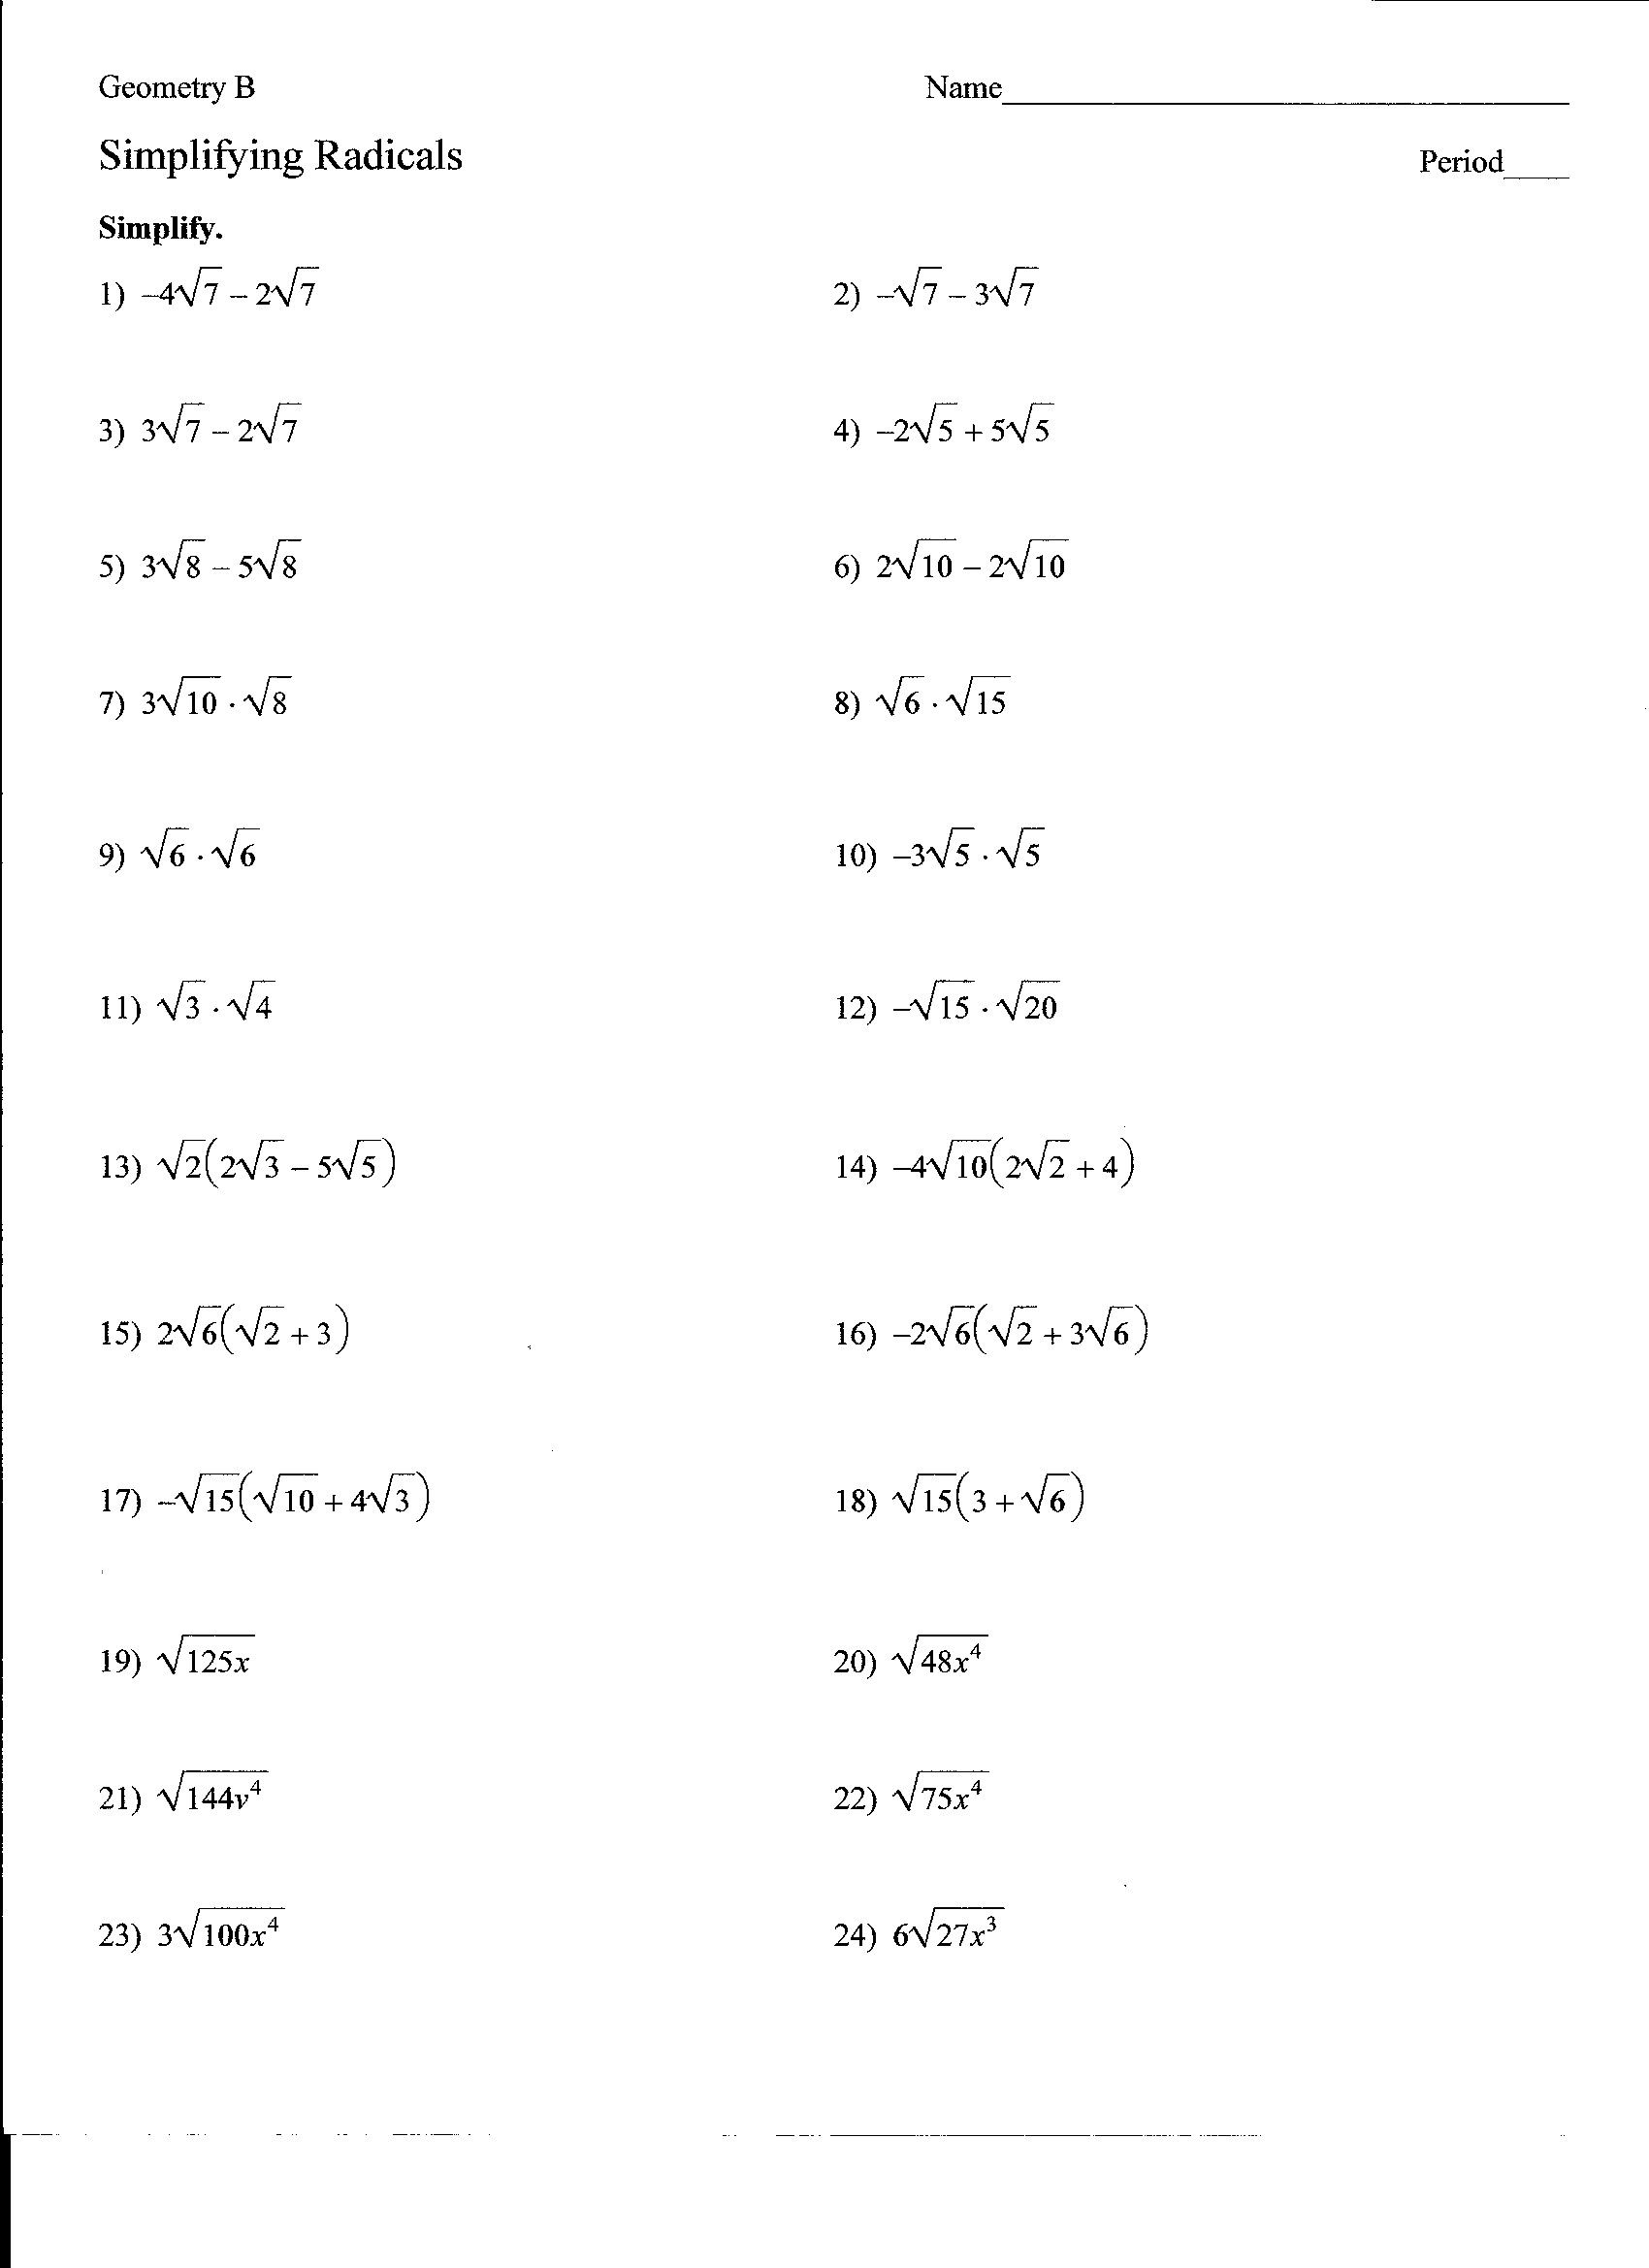 General Simplifying Radicals Worksheet 1